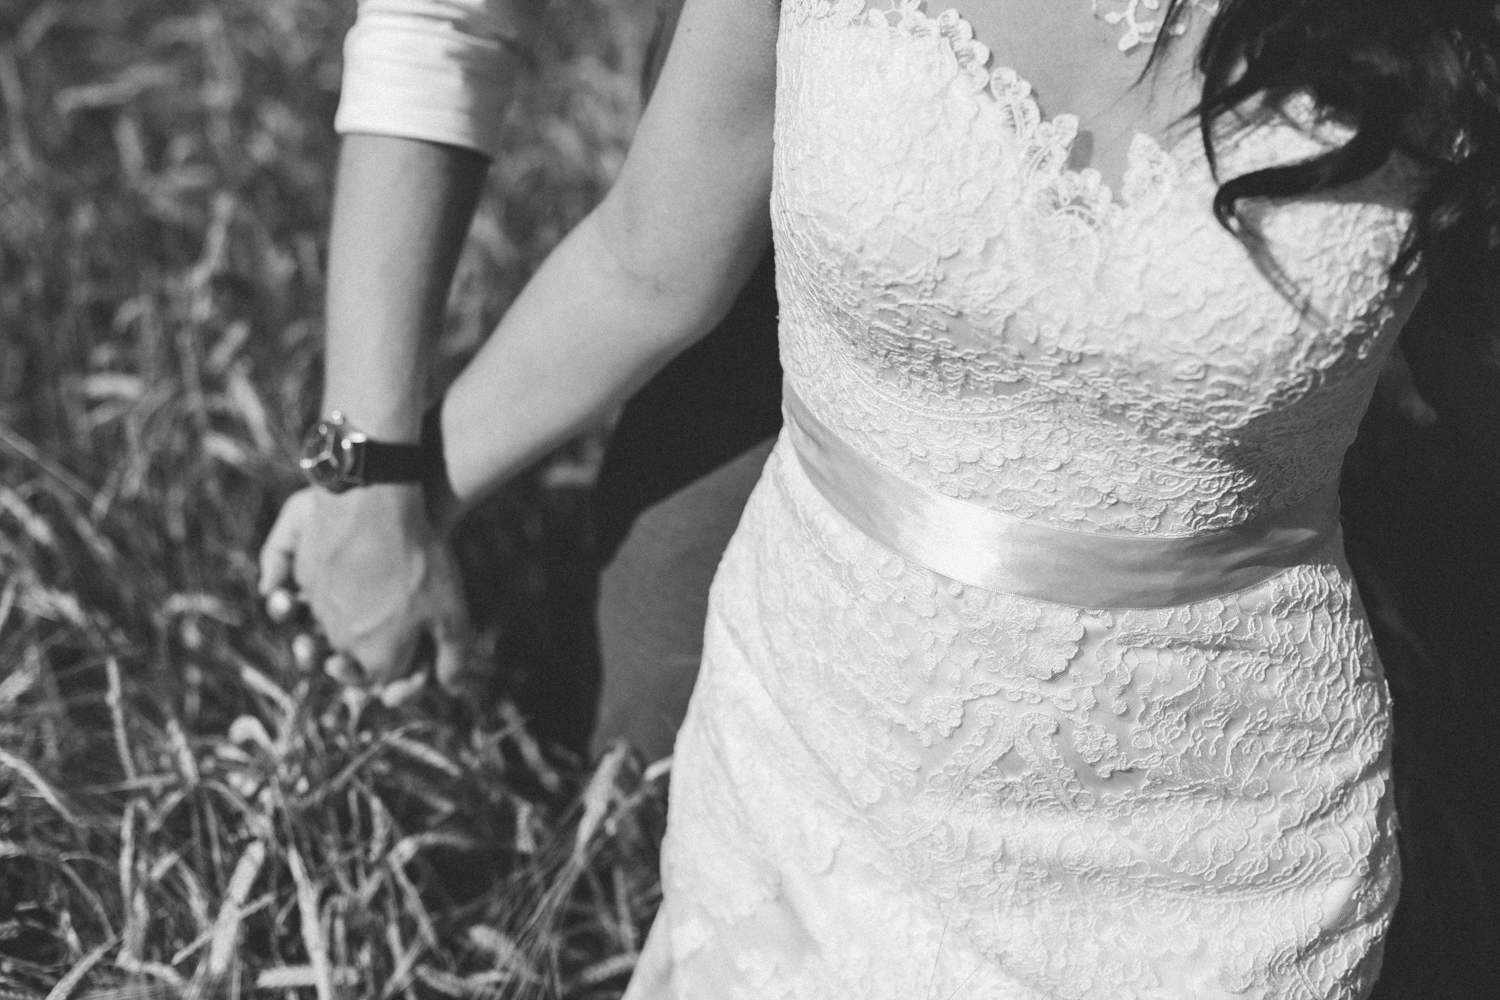 lethbridge-wedding-photography-love-and-be-loved-photographers-ashlin-anne-backyard-wedding-image-picture-photo-320.jpg